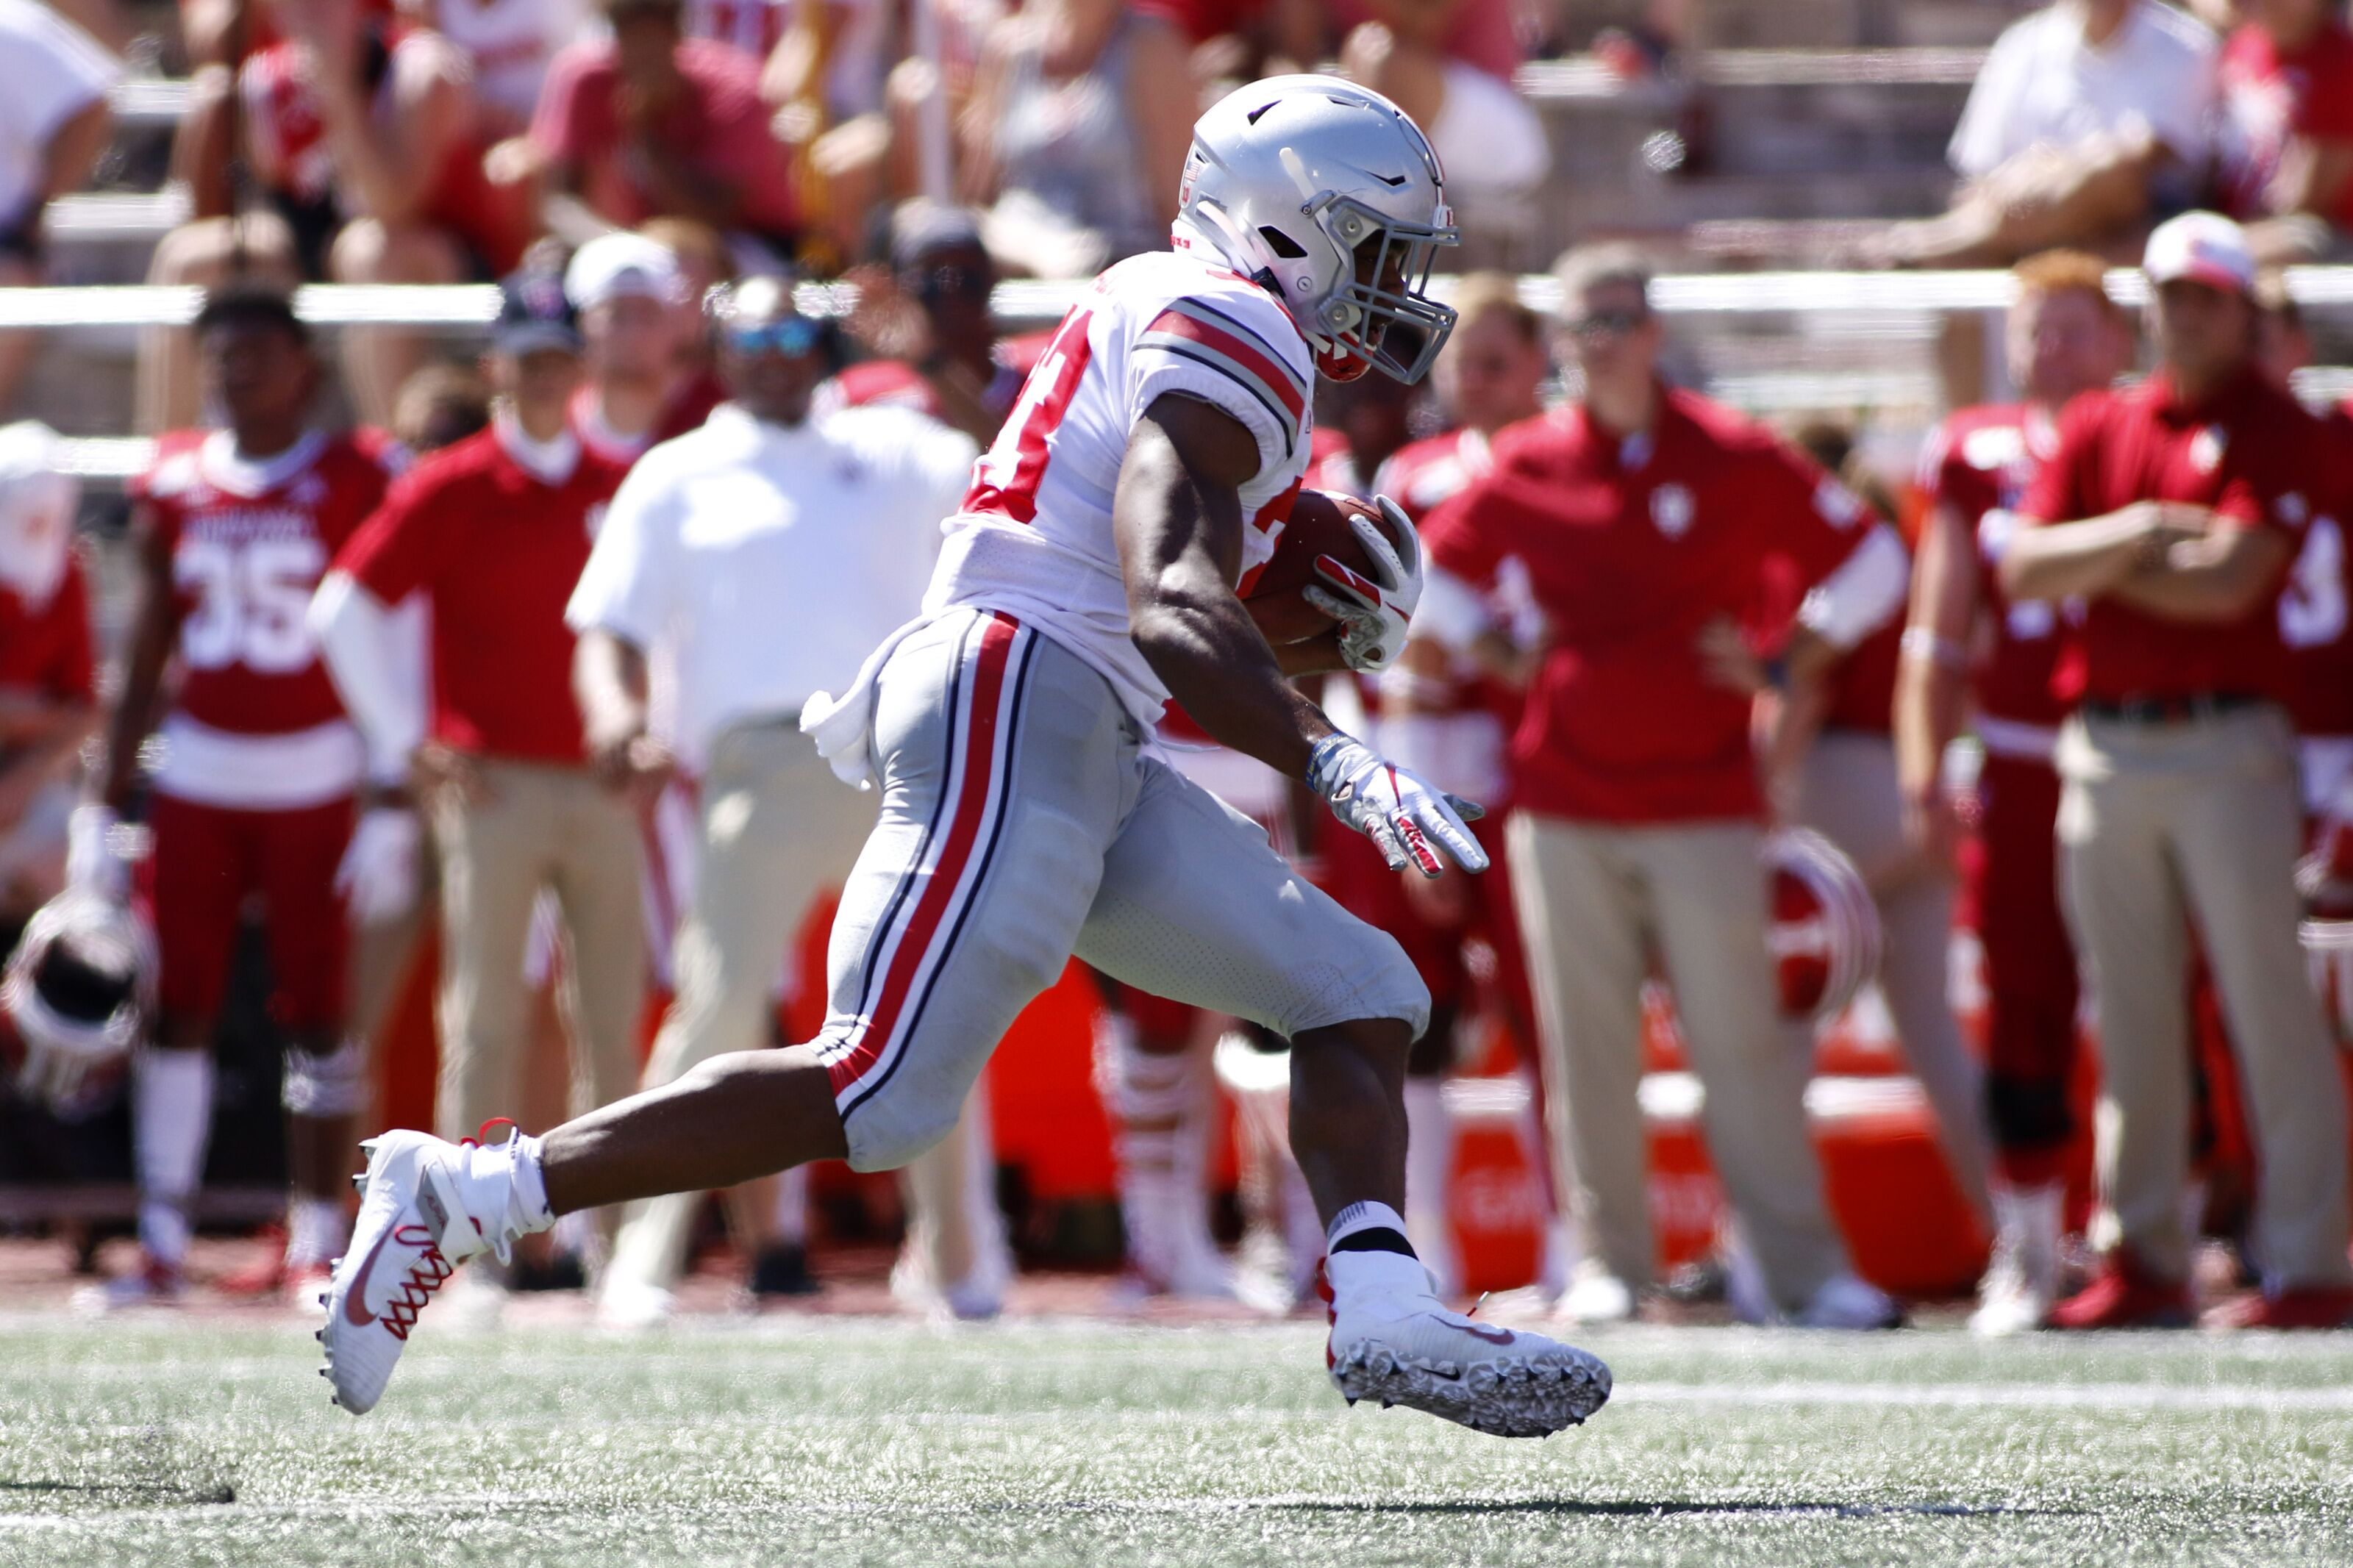 Ohio State Football: A look back at 51-10 win over Indiana